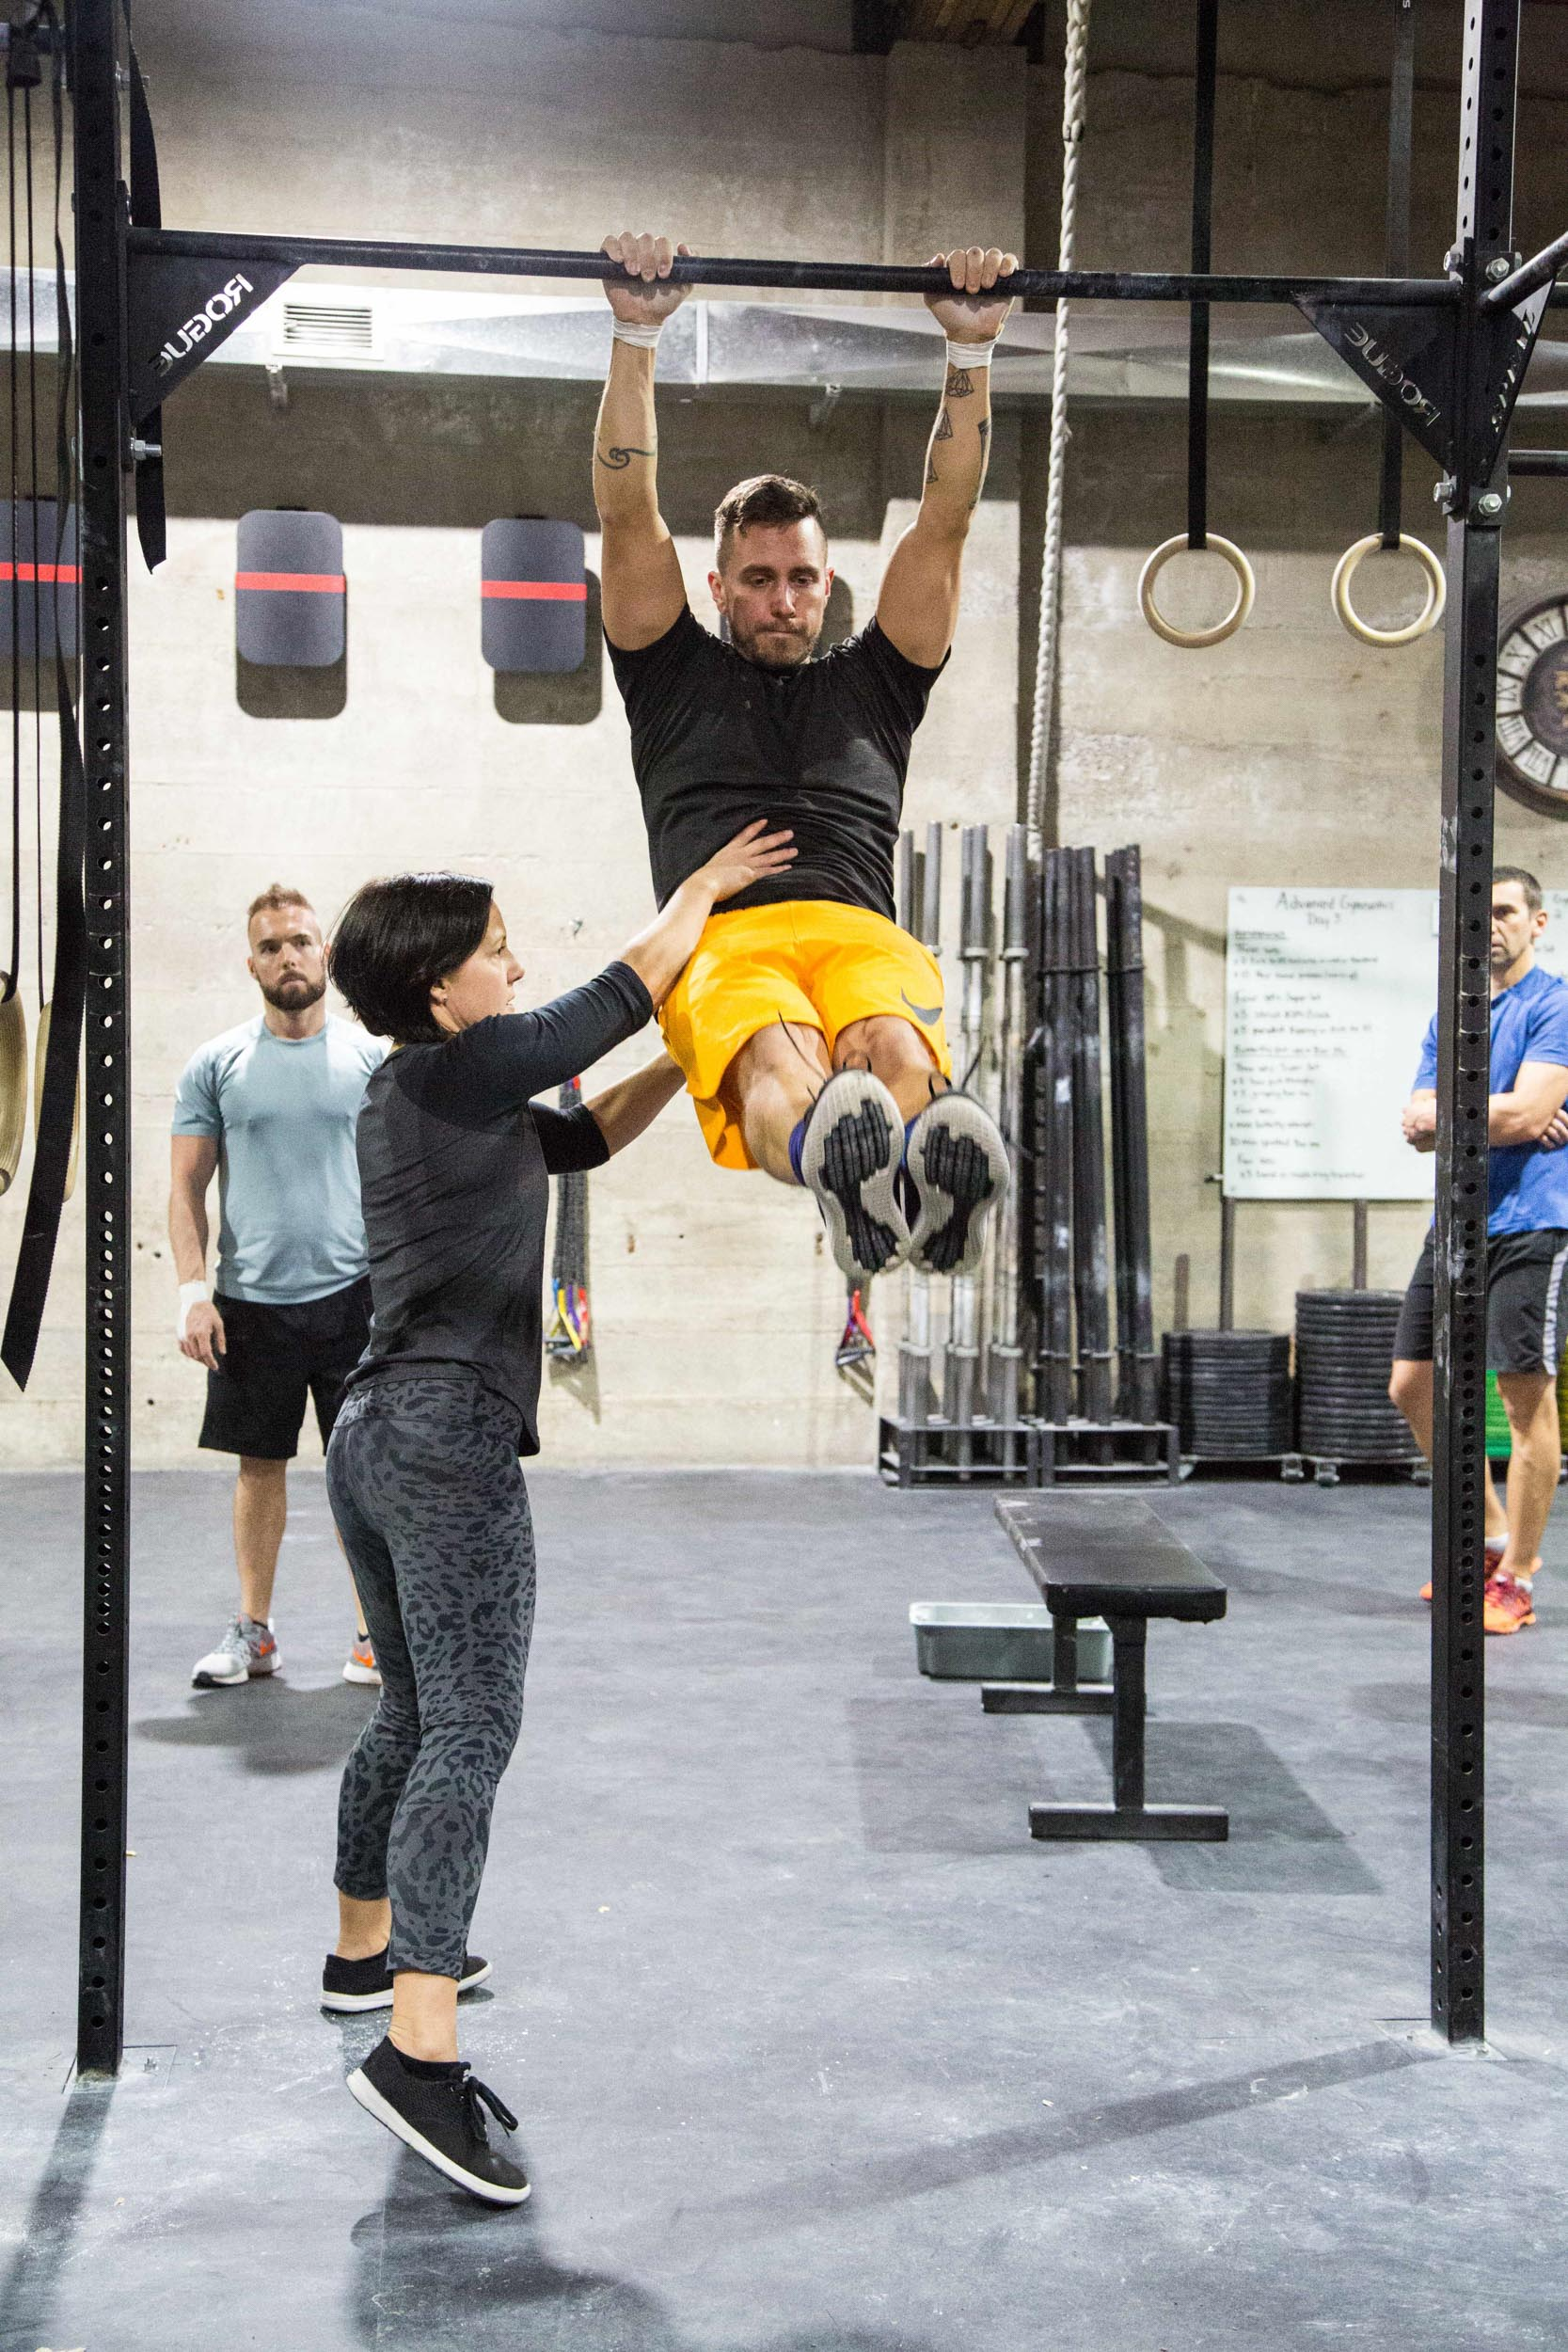 Inconsistent on the Rings? - Sun 6.25.17 - CrossFit Vacaville North